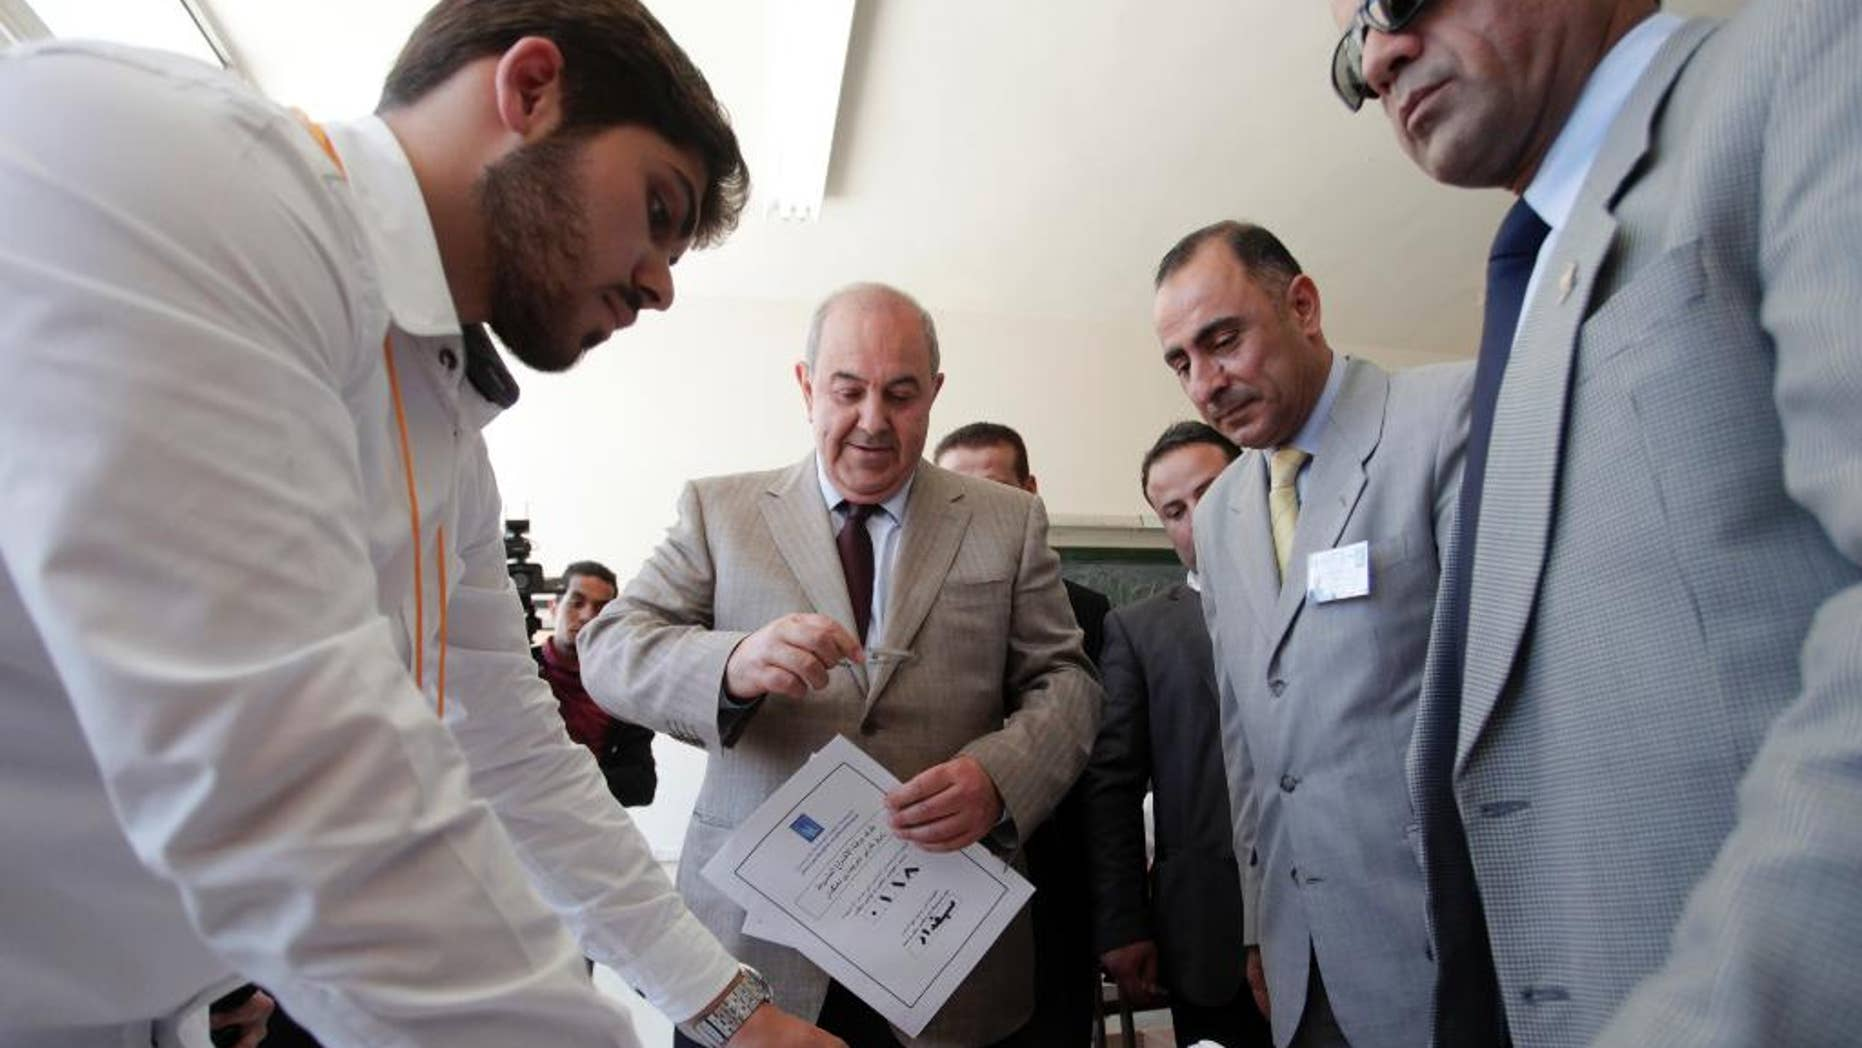 """Ayad Allawi, the leader of Iraq's main Sunni-backed Iraqiya bloc and former Prime Minister, center, arrives at a polling station as his identity is checked by one of the voting watchers, for the Iraqi parliamentary election, in Amman, Jordan, Sunday, April 27, 2014. After voting Allawi expressed his views on the election, """"really this is a shameful kind of elections, and I can categorize it by an election which is not worthy, not up to the standards of the Iraqi people, but this is the only way for change in Iraq, and I call upon all Iraqis to go to the ballot boxes to cast their votes to change the current situation,""""Allawi said.  (AP Photo/Mohammad Hannon)"""